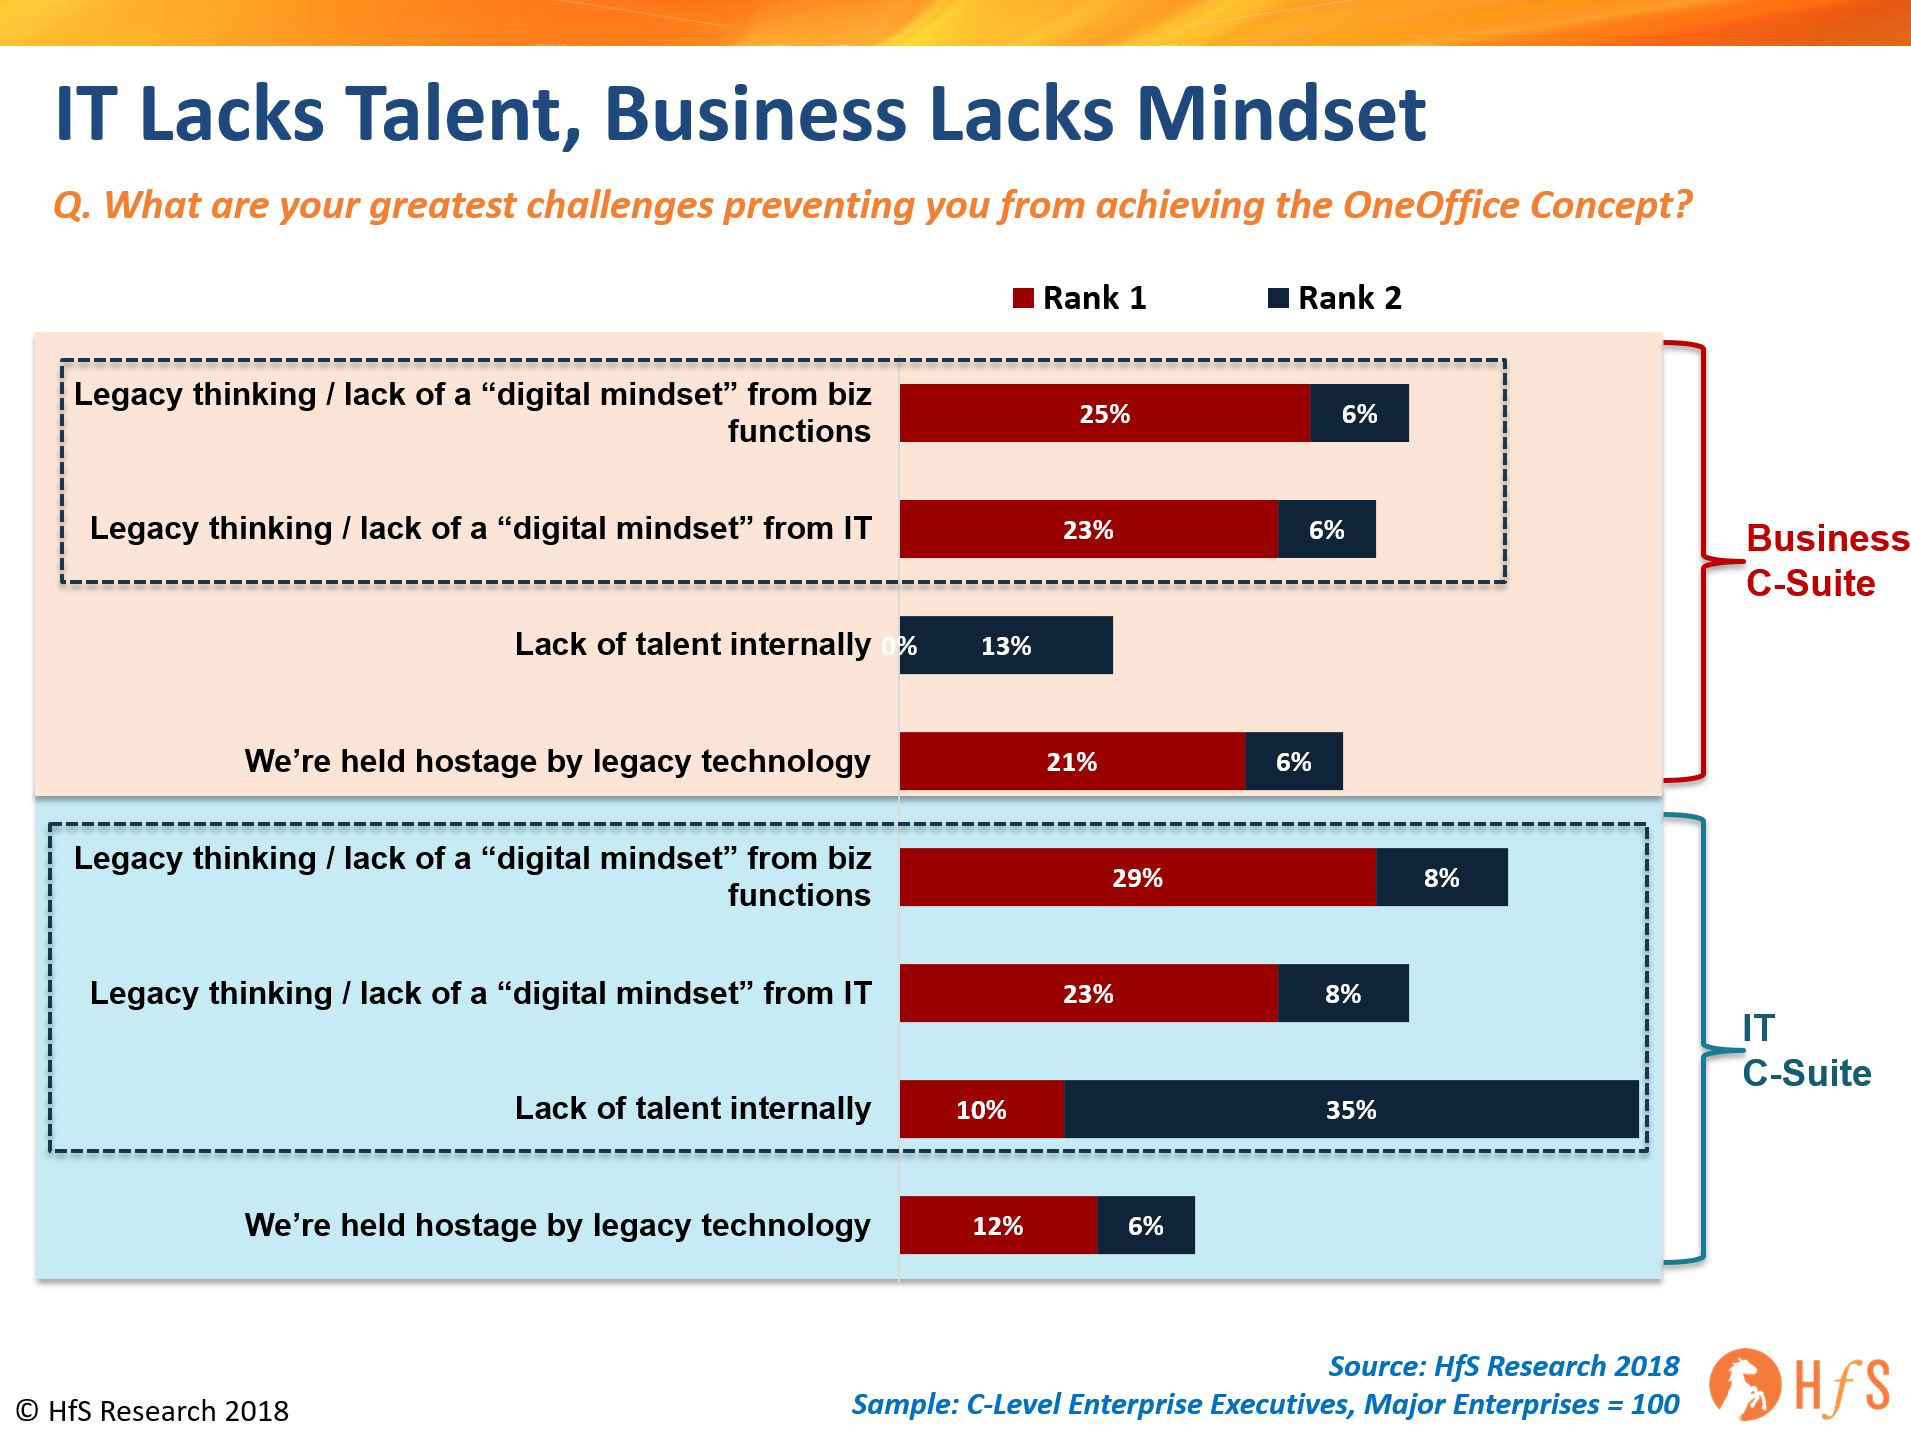 It's not all about mindset: The lack of IT talent is the biggest roadblock to reaching the Digital OneOffice promised land